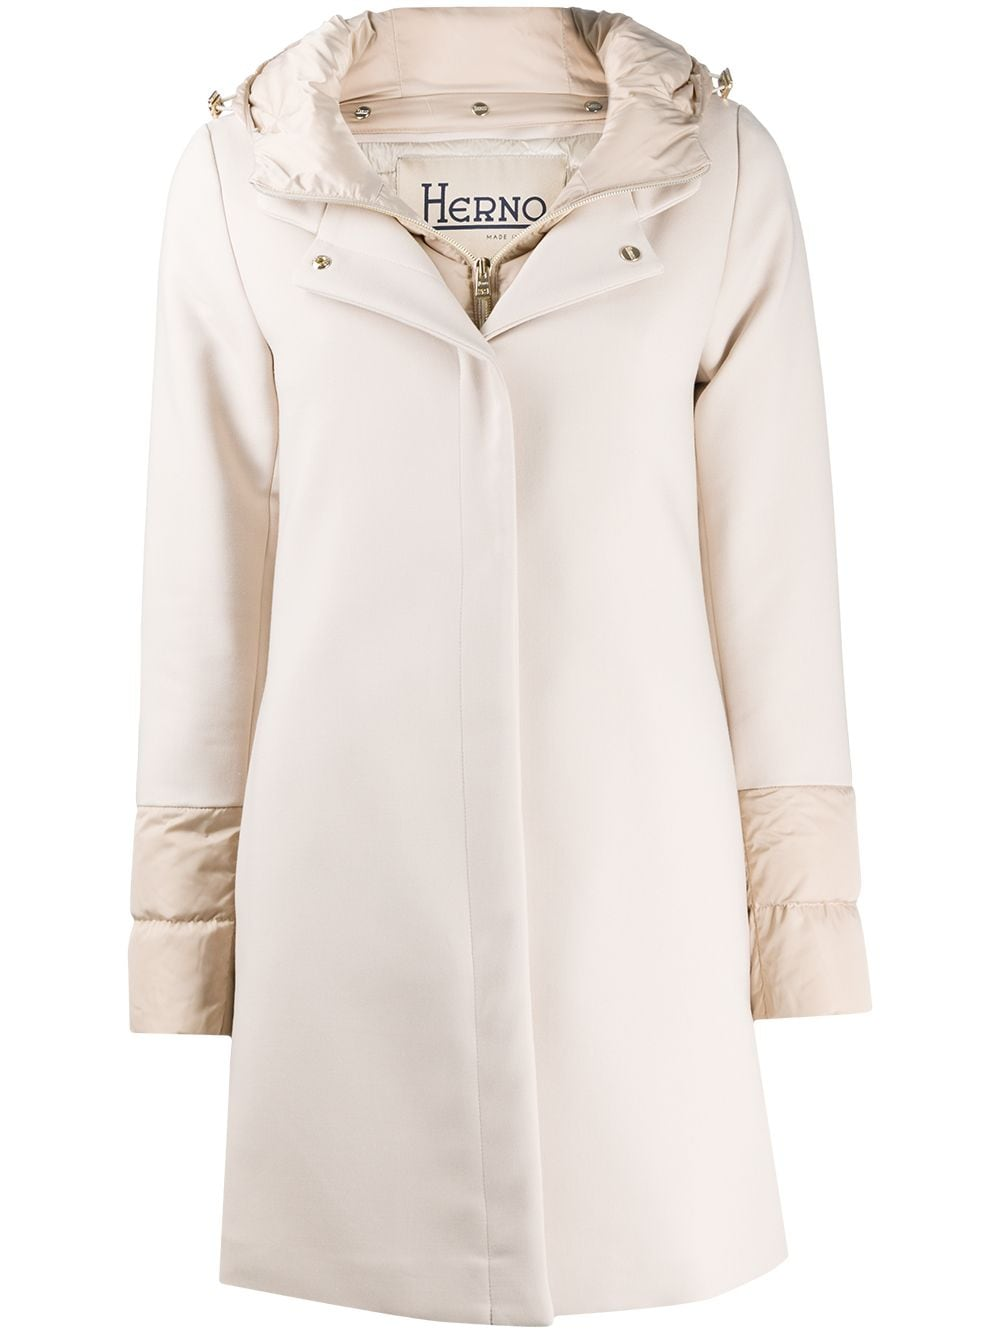 Chantilly cotton-wool blend feather down padded coat  HERNO |  | PI1157D-336001985